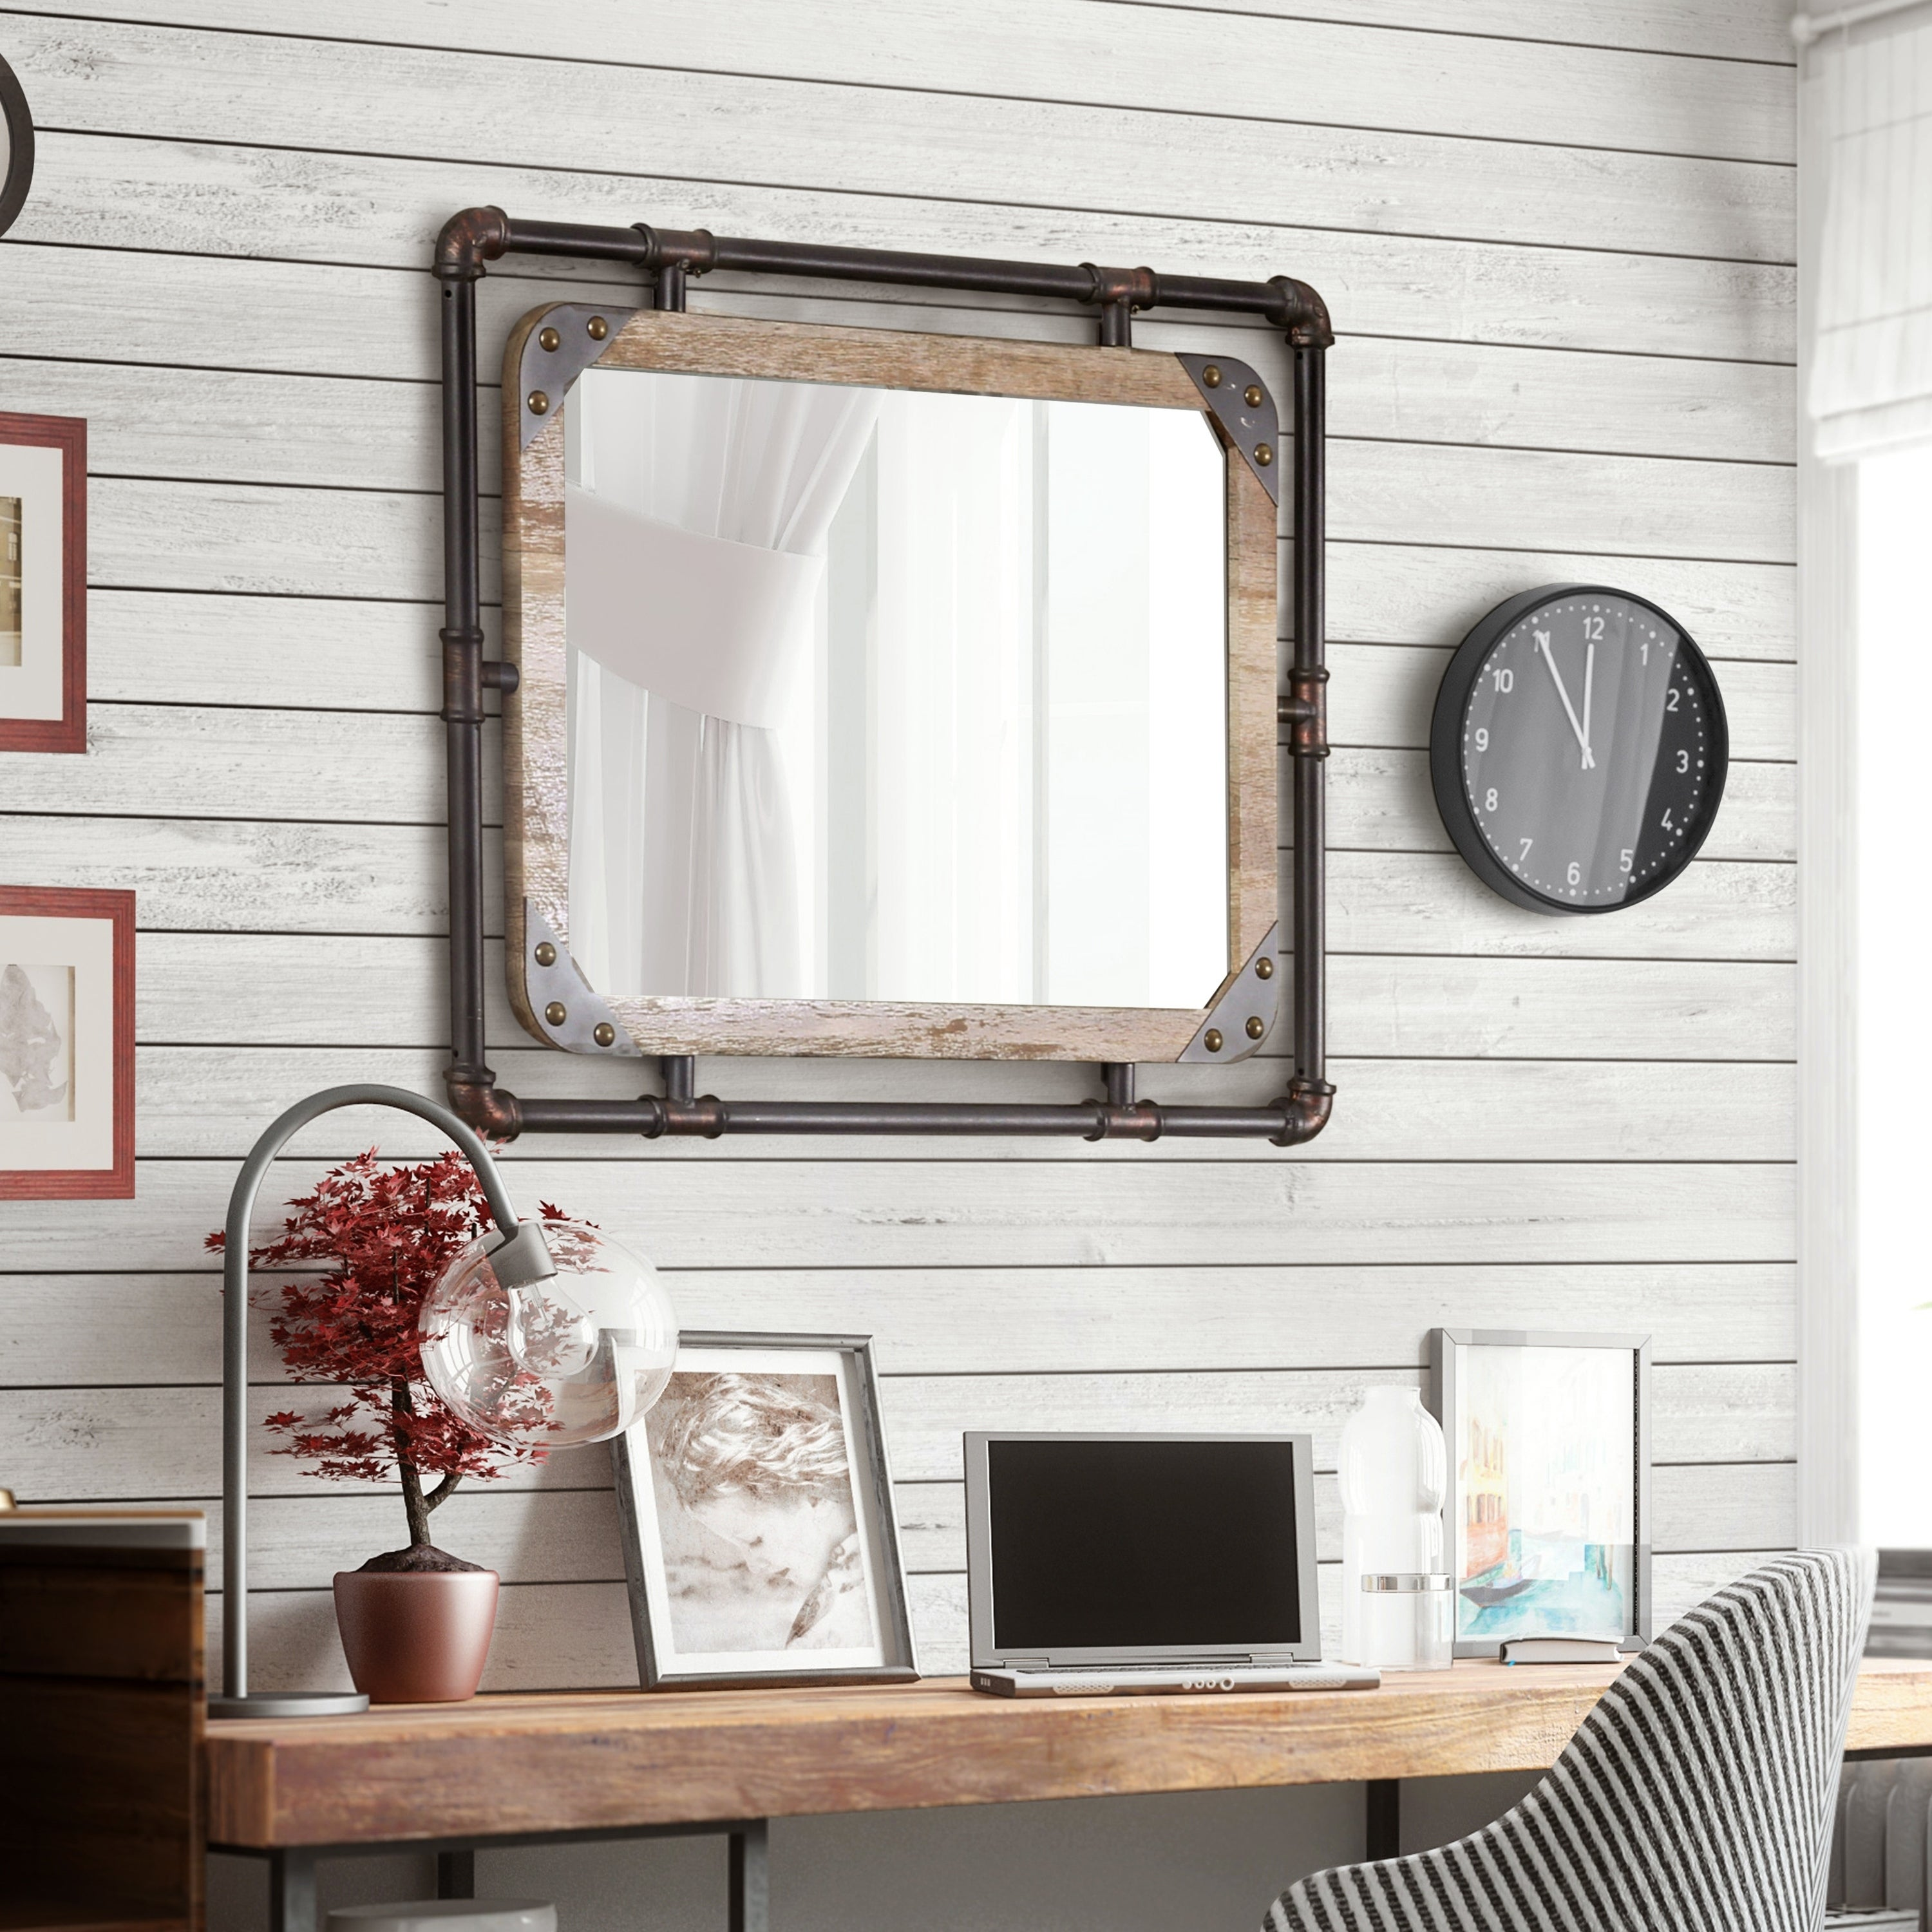 Buy Horizontal Mirrors Online at Overstock.com | Our Best Decorative ...